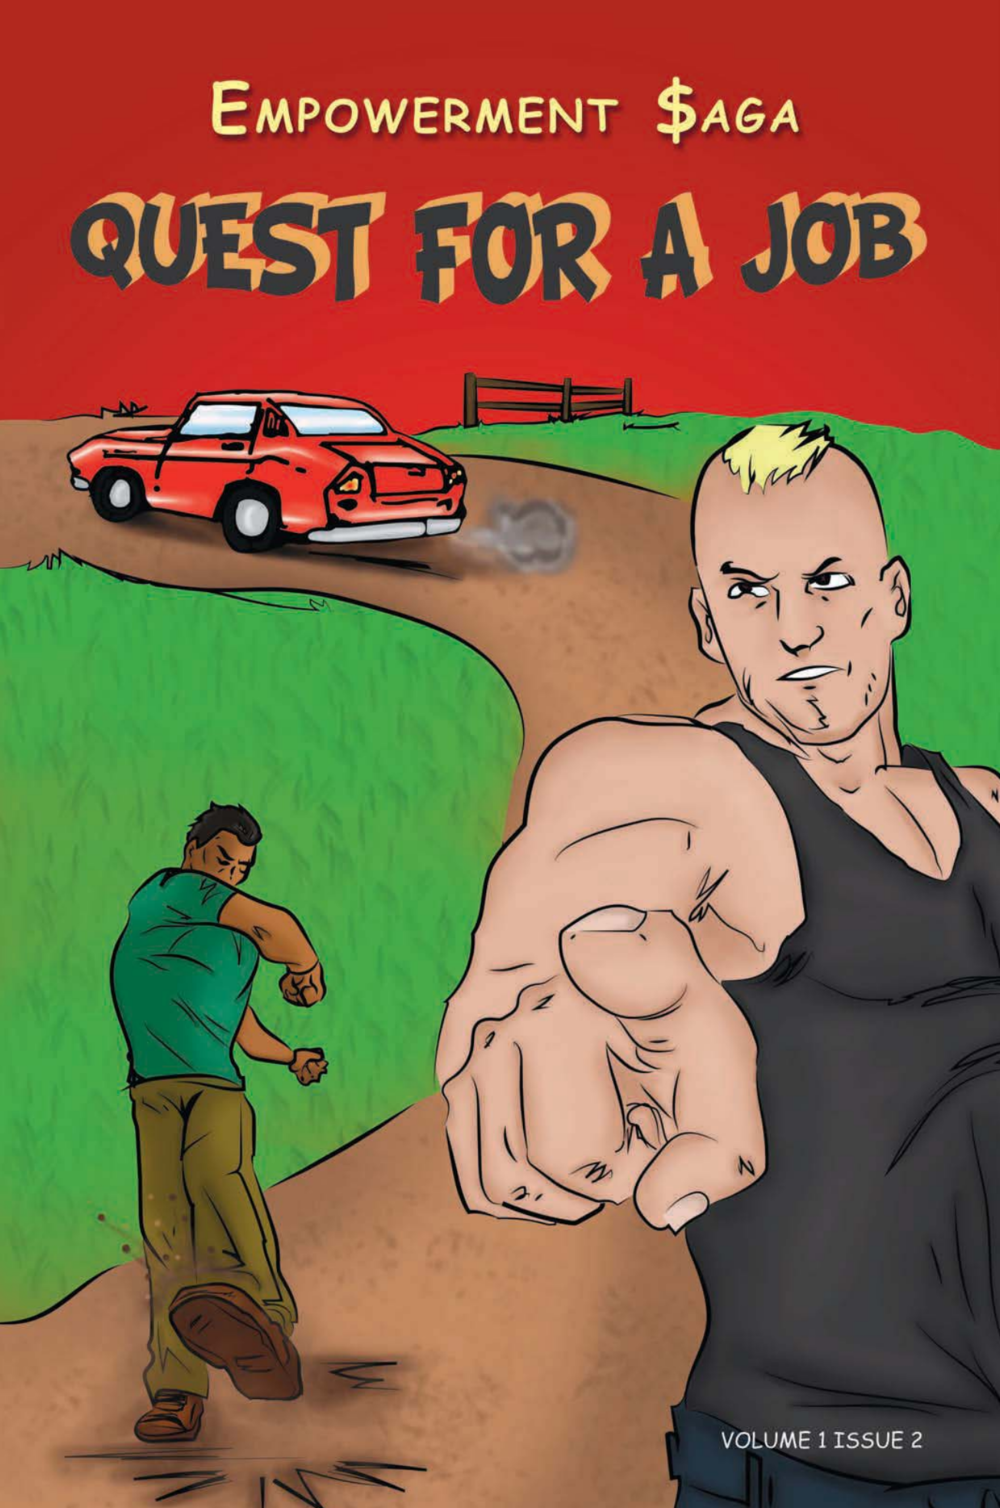 Book 2: Quest for a Job